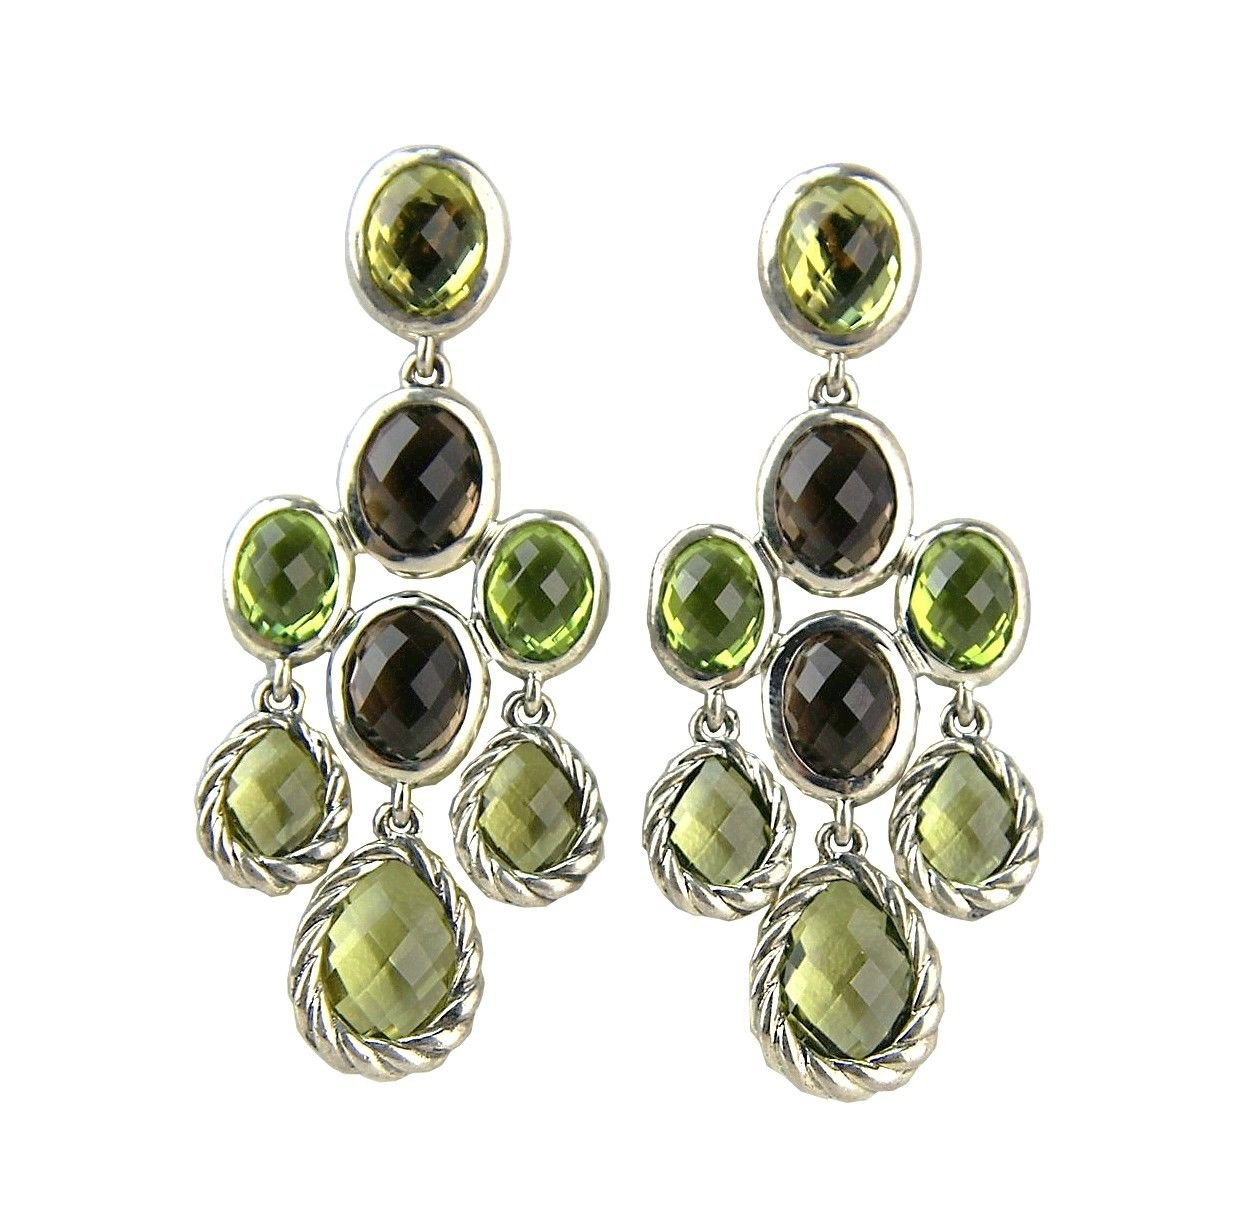 DAVID YURMAN STERLING SILVER CHANDALIER DANGLING PERIDOT EARRINGS NEW BOX # 14E